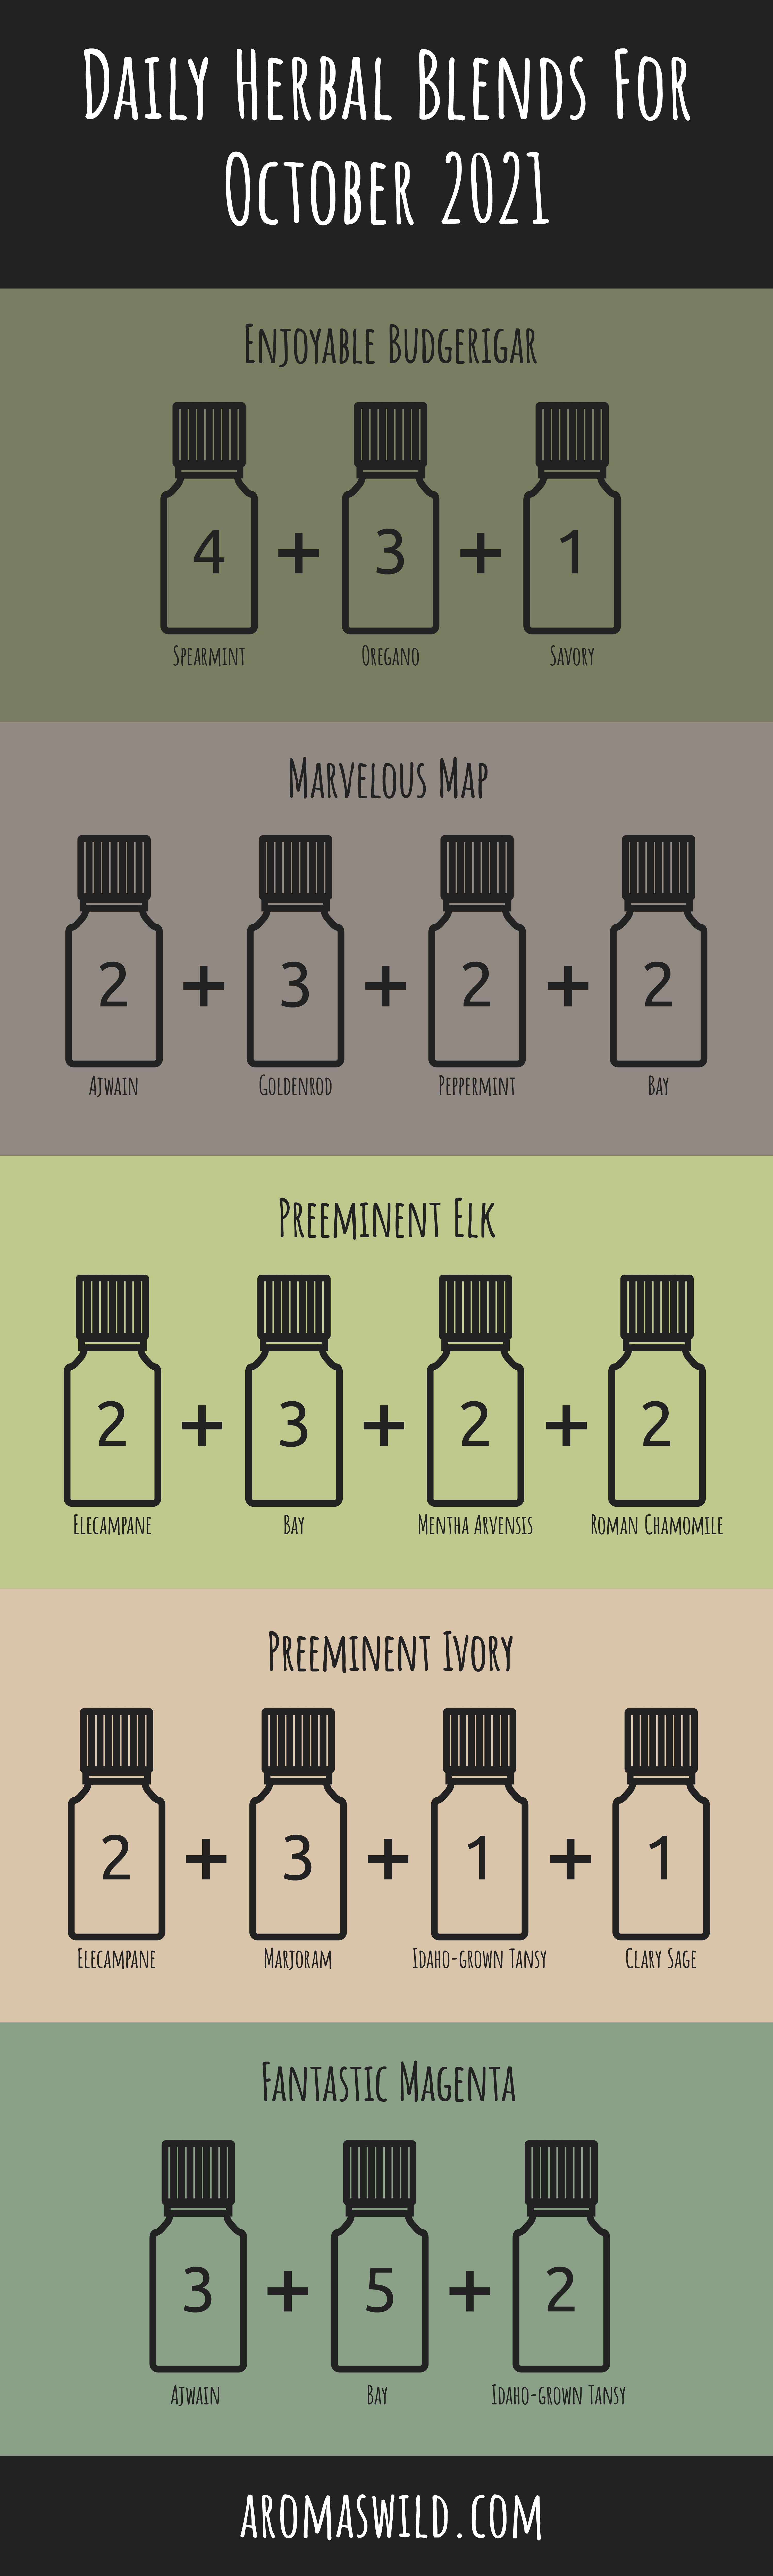 Top Herb Scented Essential Oil Blends For Aromatherapy – Daily Herbal Blends For 23 October 2021